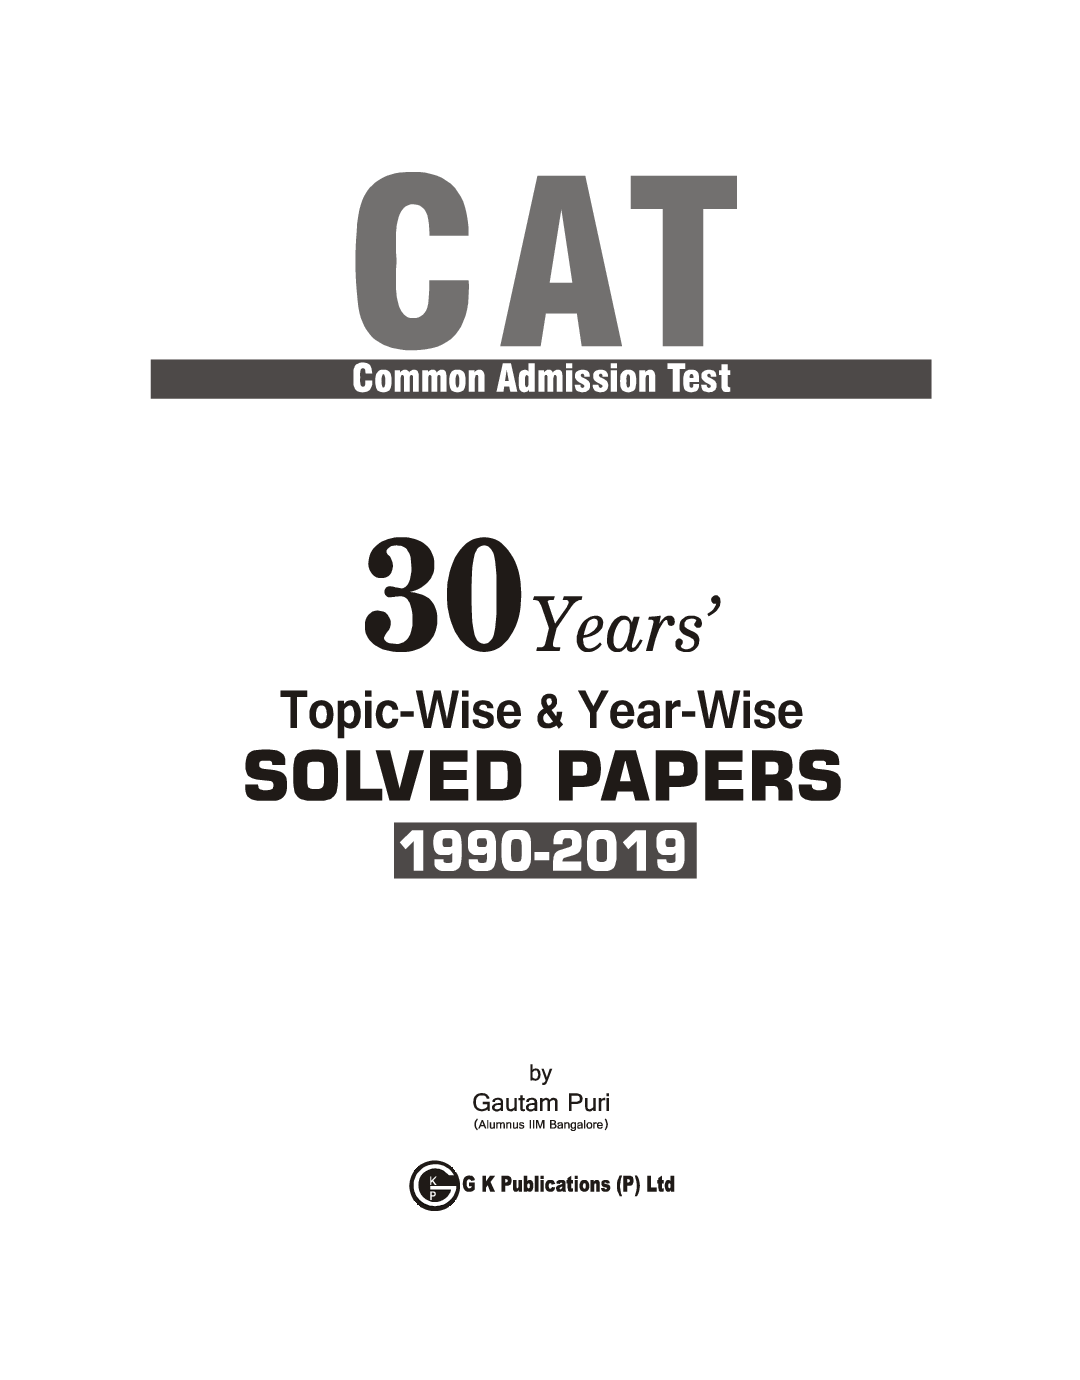 CAT 2020 30 Years Topic-Wise & Year-Wise Solved Papers 1990-2019 - Page 4